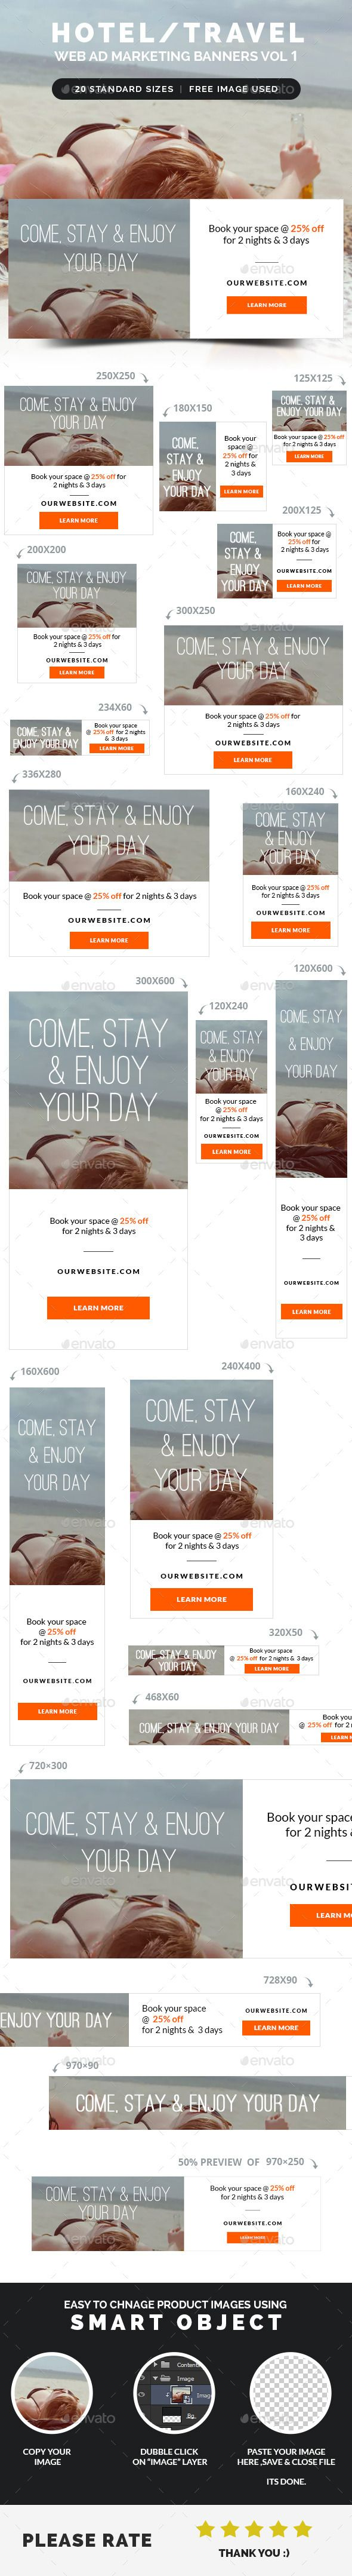 Hotel / Travel Web Ad Marketing Banners Template PSD | Buy and Download: http://graphicriver.net/item/hotel-travel-web-ad-marketing-banners-vol-1/8952771?WT.ac=category_thumb&WT.z_author=webduck&ref=ksioks